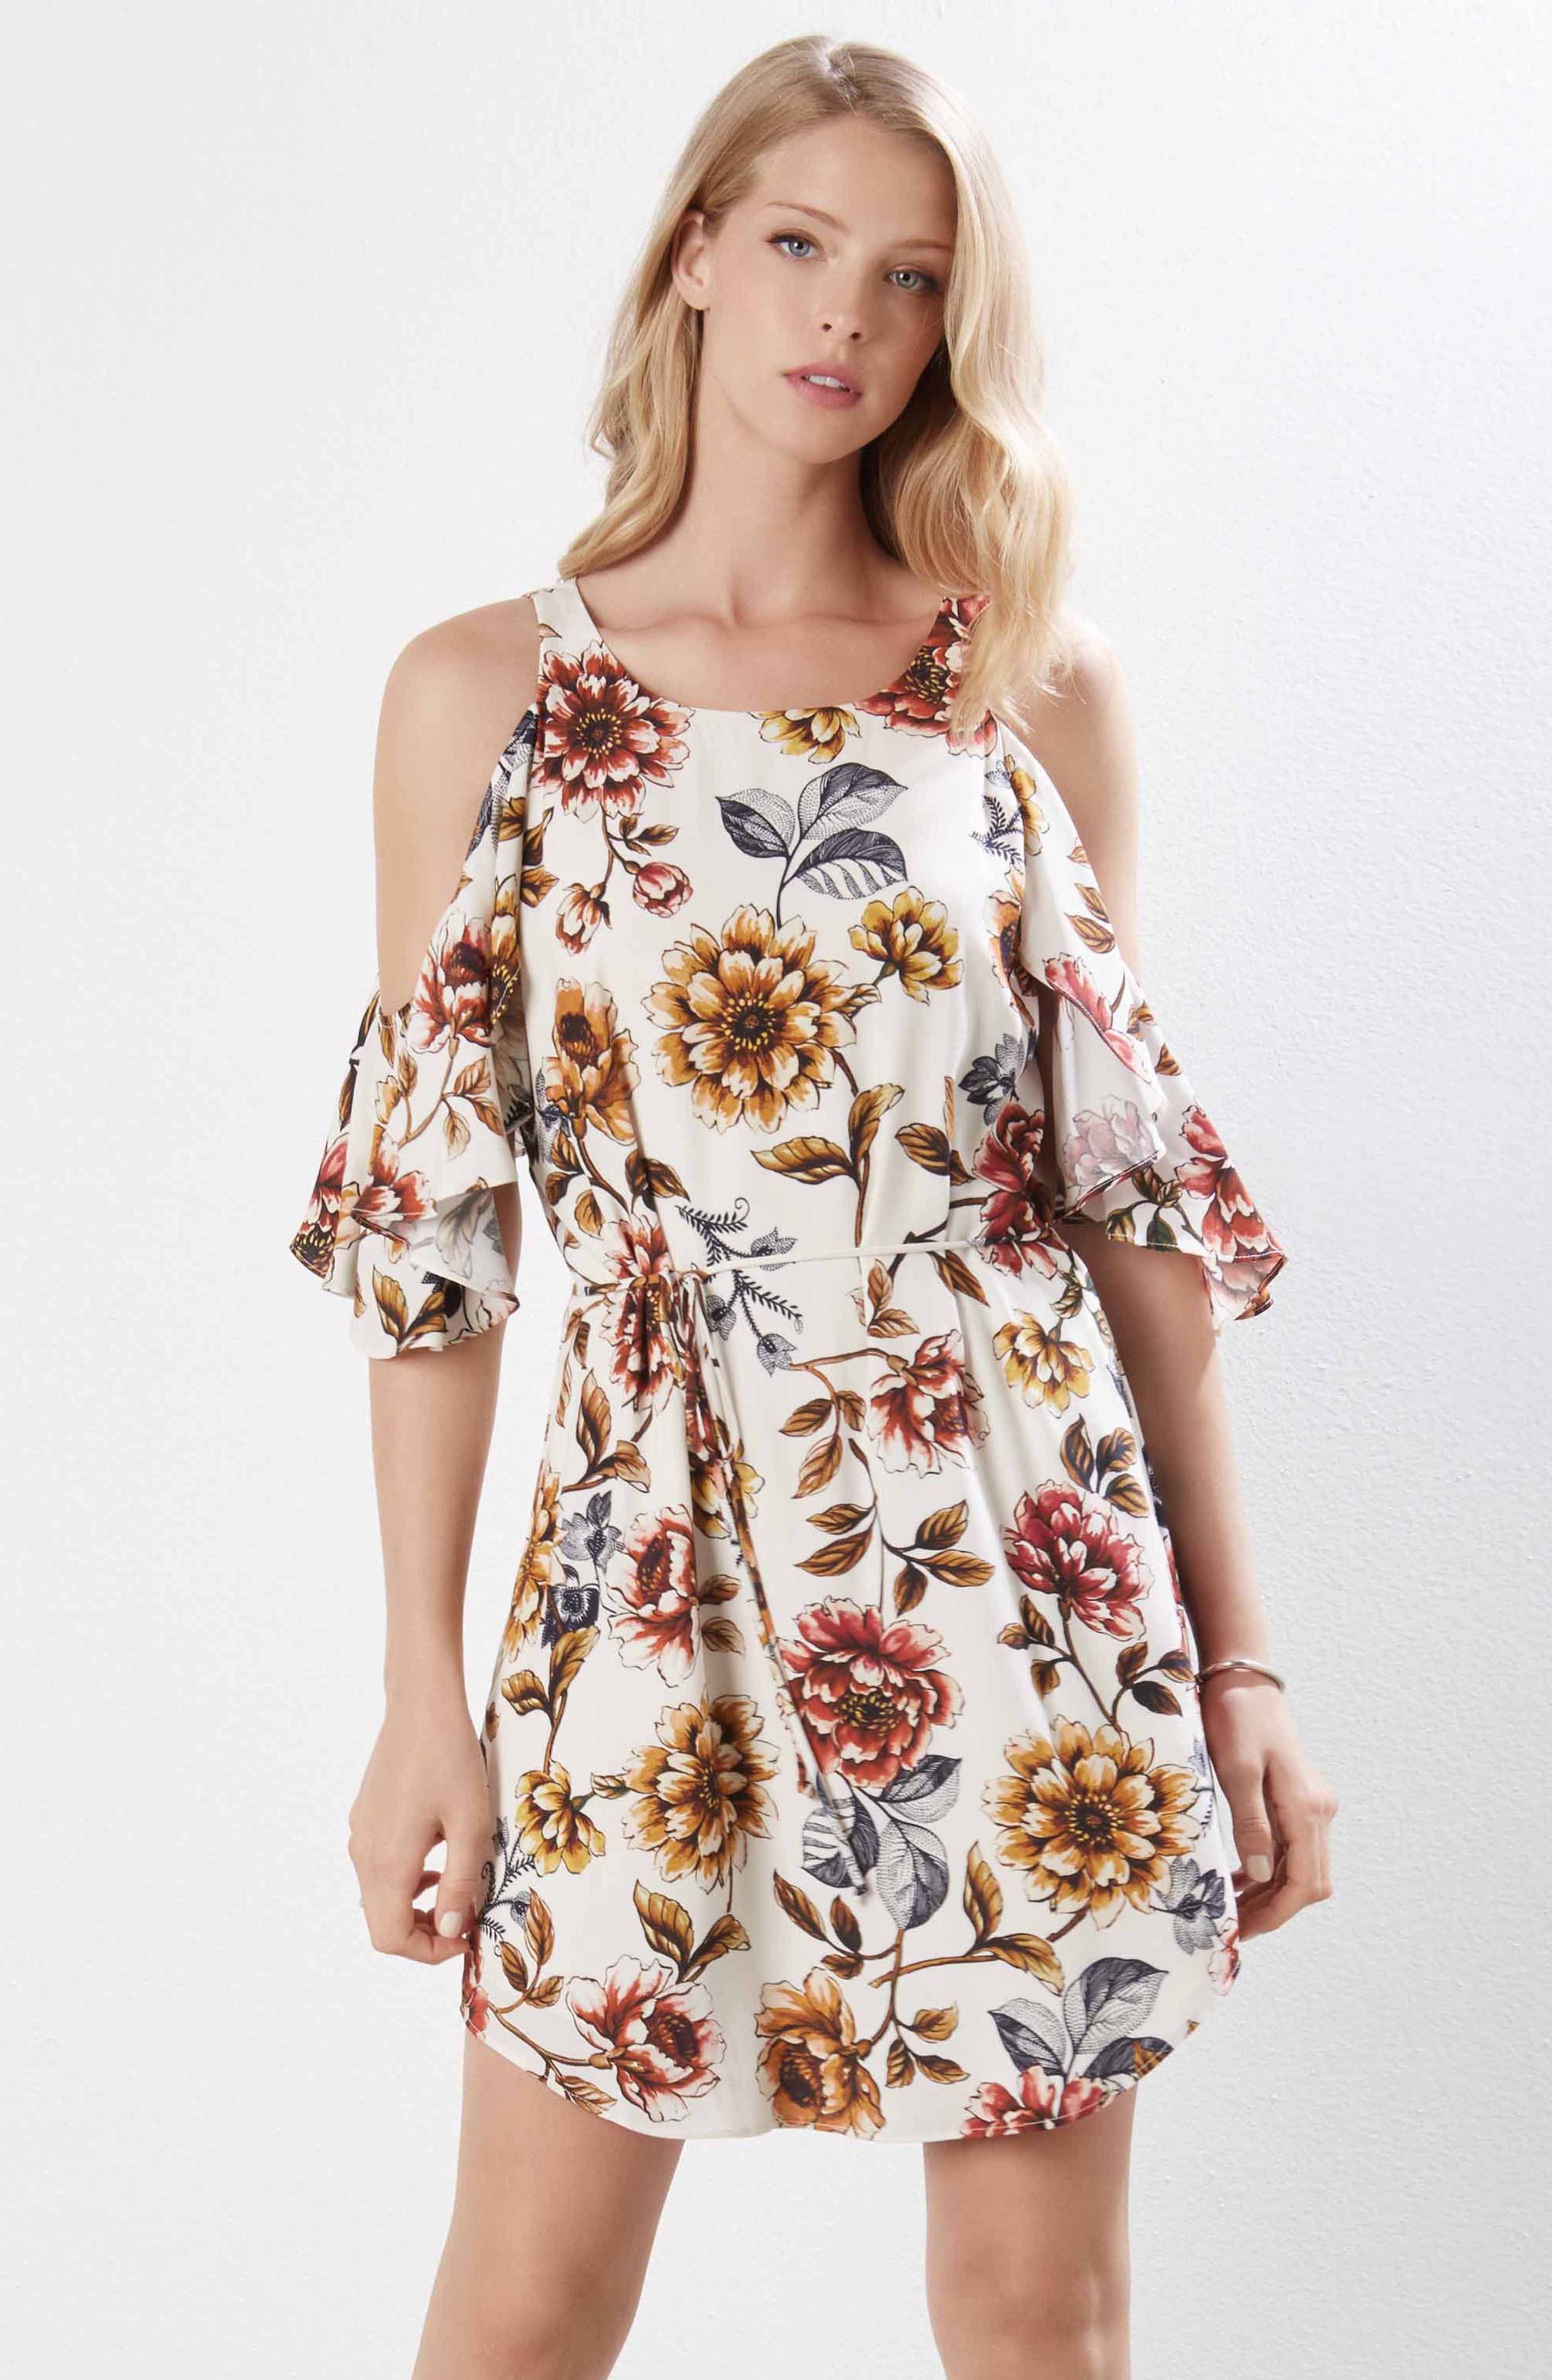 Kane Kane Cold Shoulder Floral Dress,                             Alternate thumbnail 4, color,                             PRINT